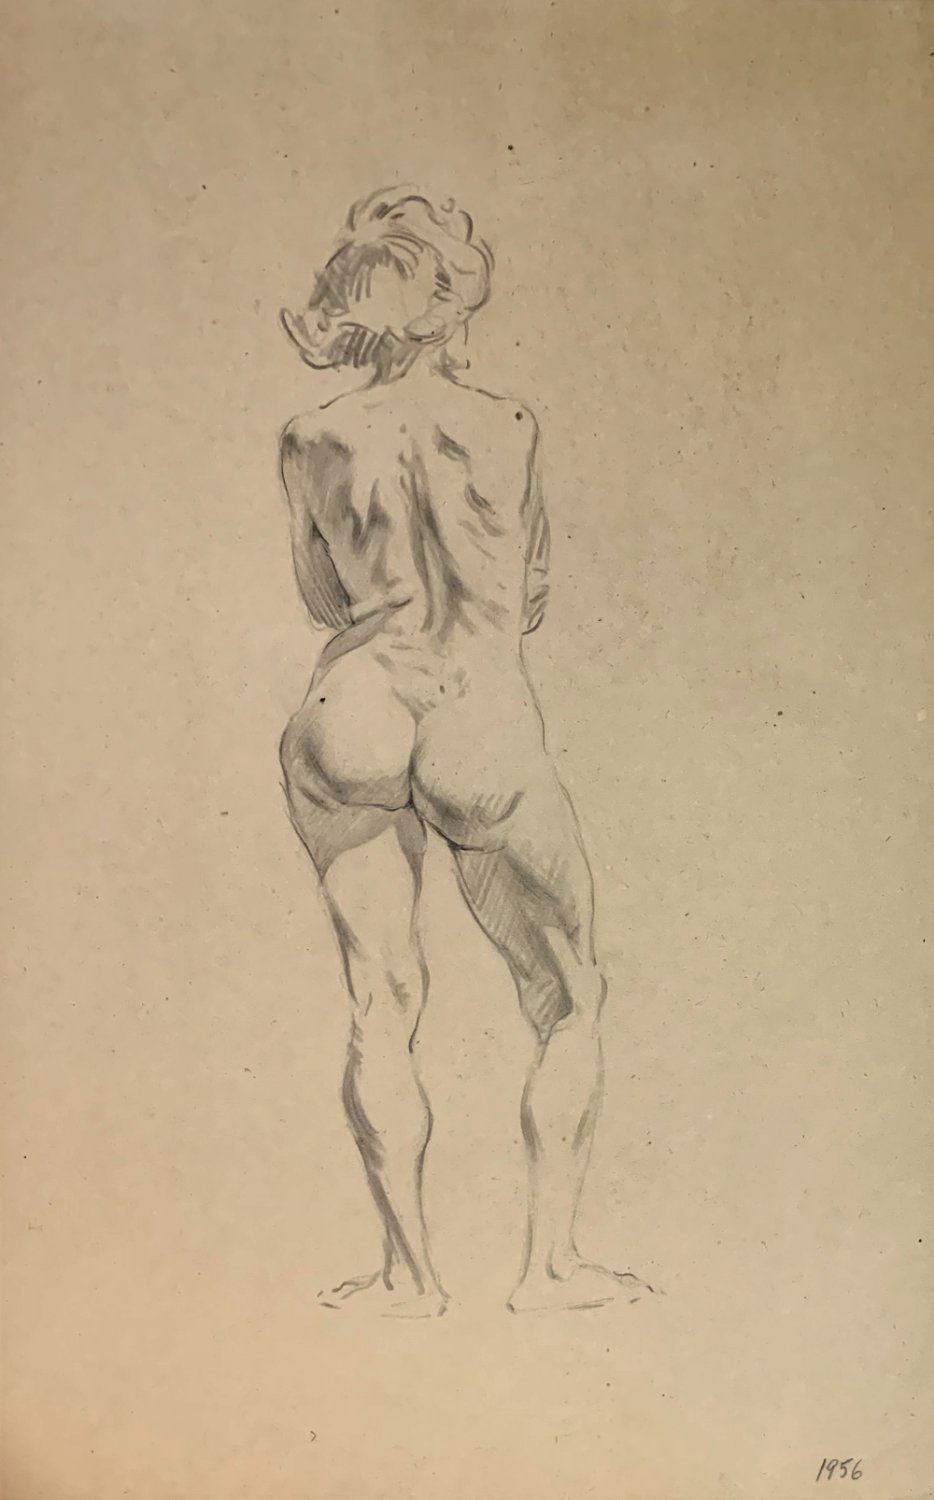 Very Detailed Large Nude Female Drawing (1950s)